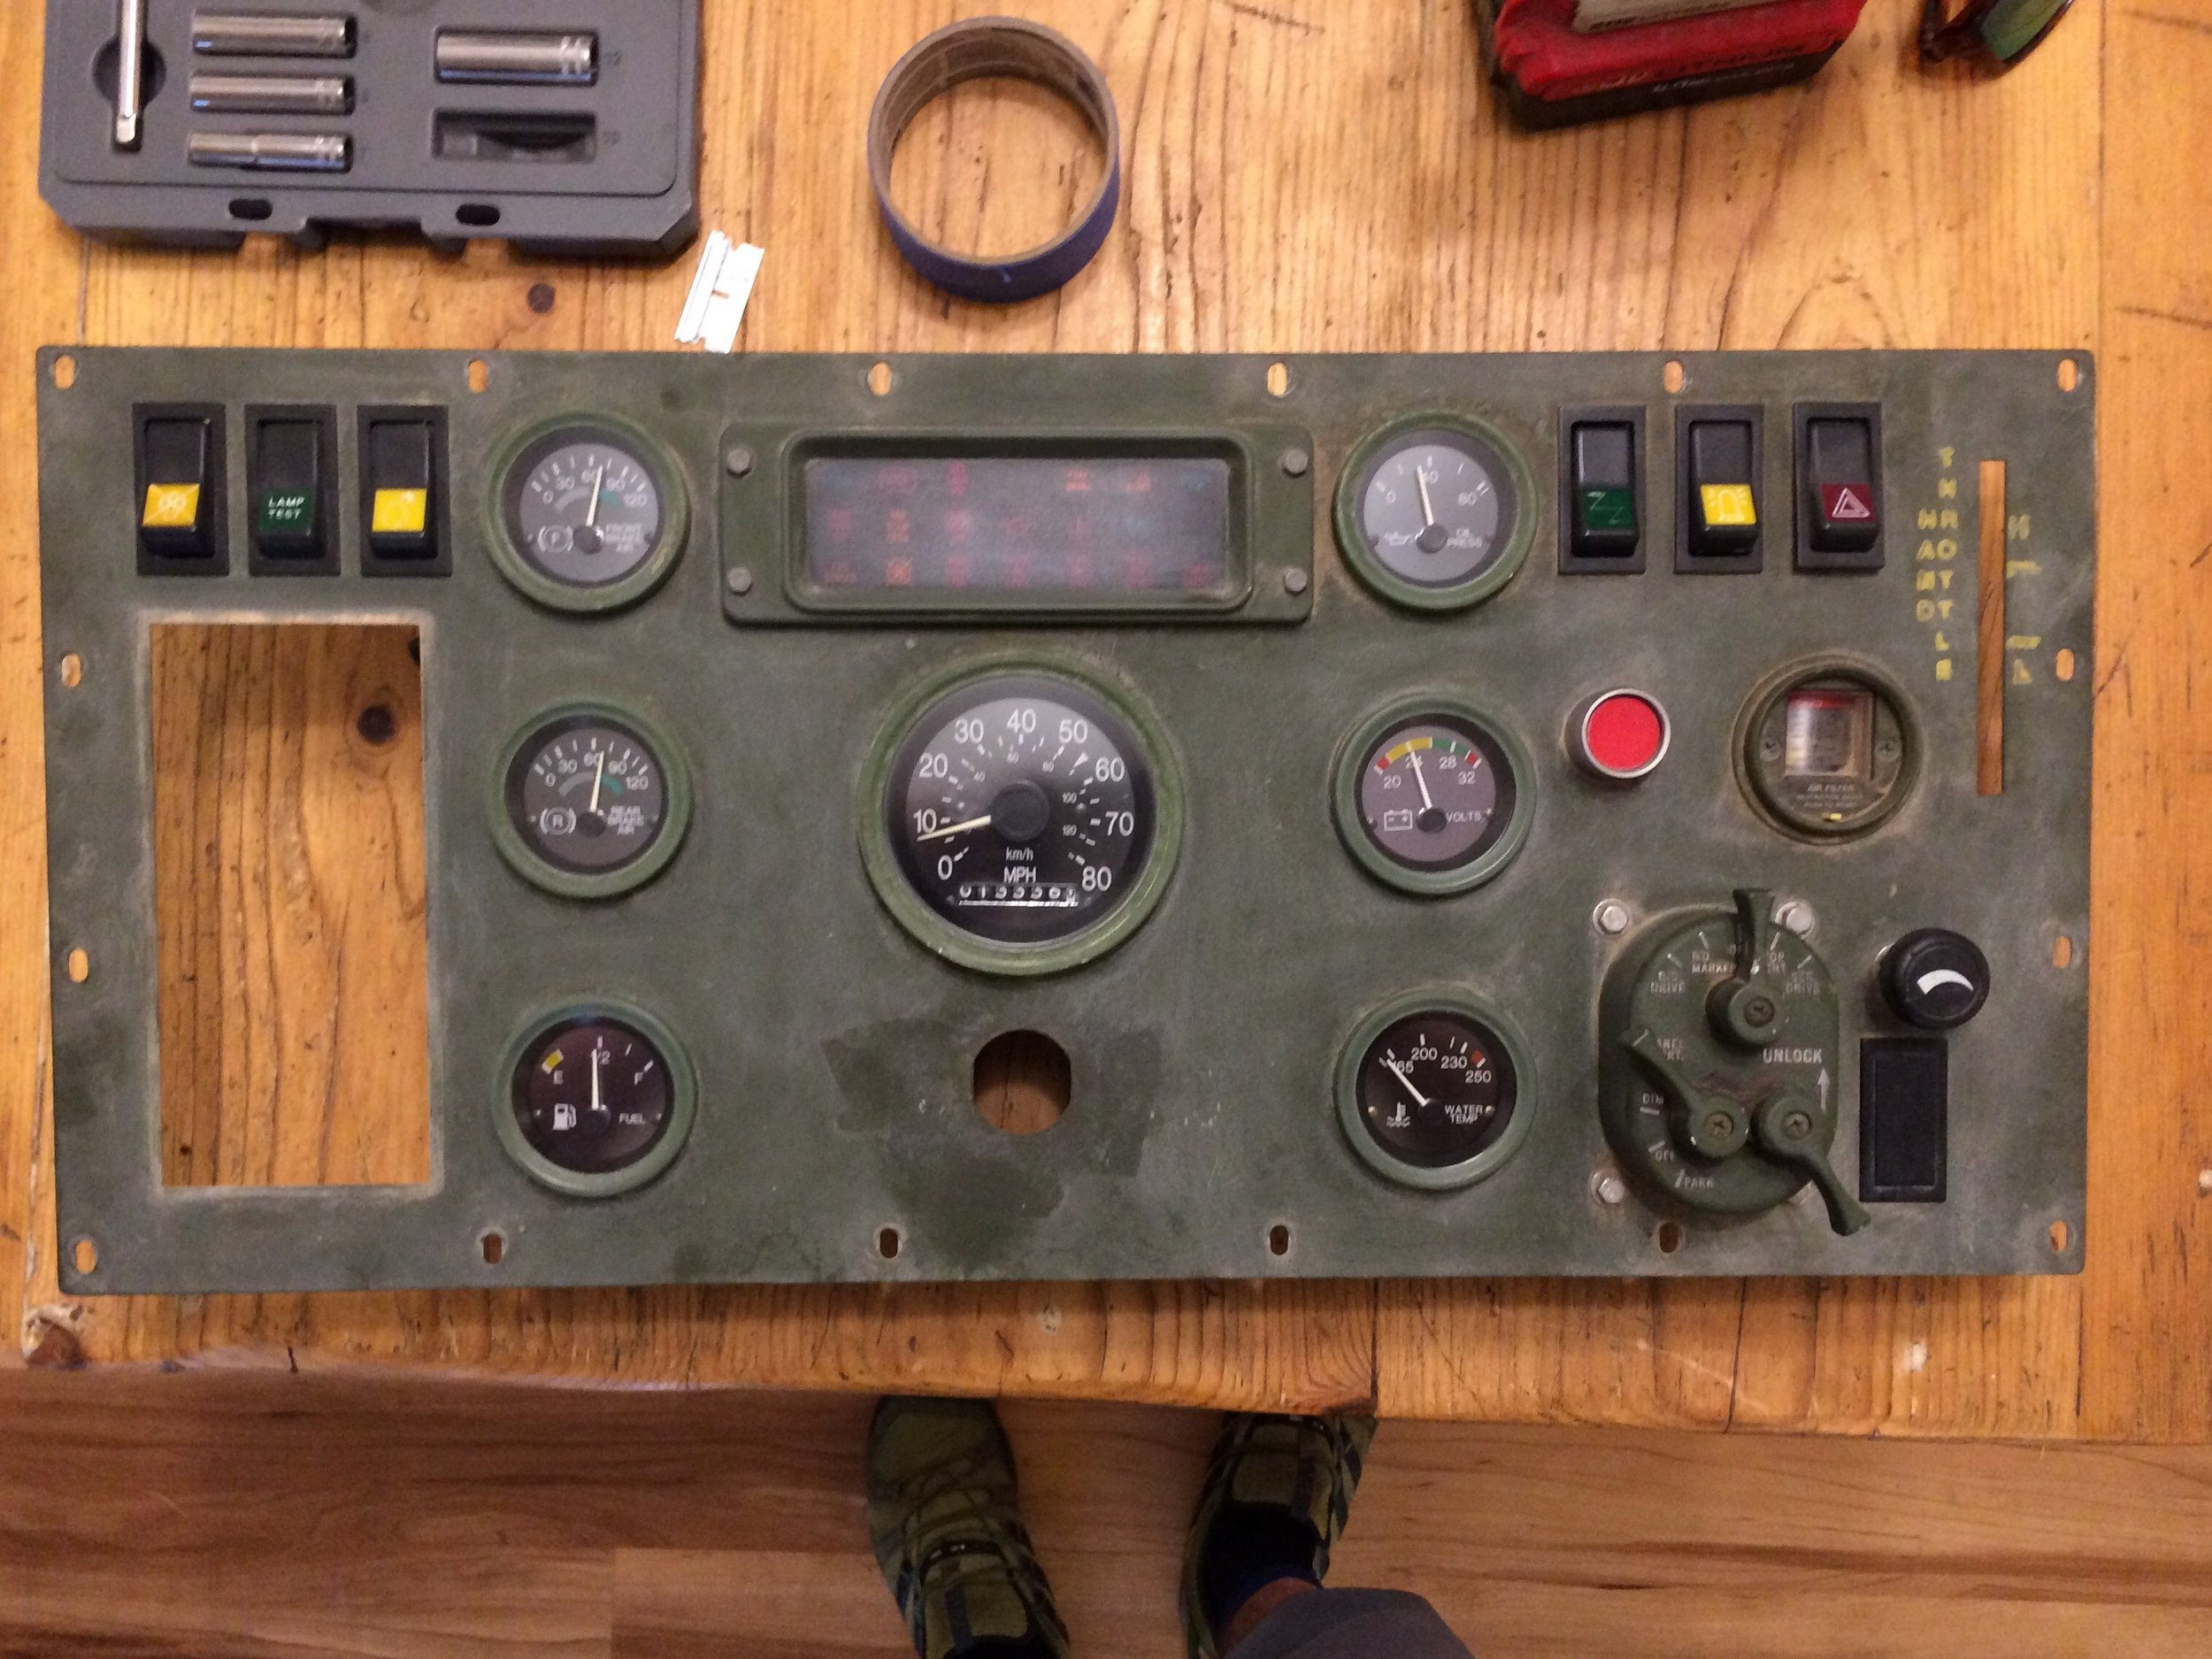 Old nasty olive green dash panel looking very military and ready for an upgrade.